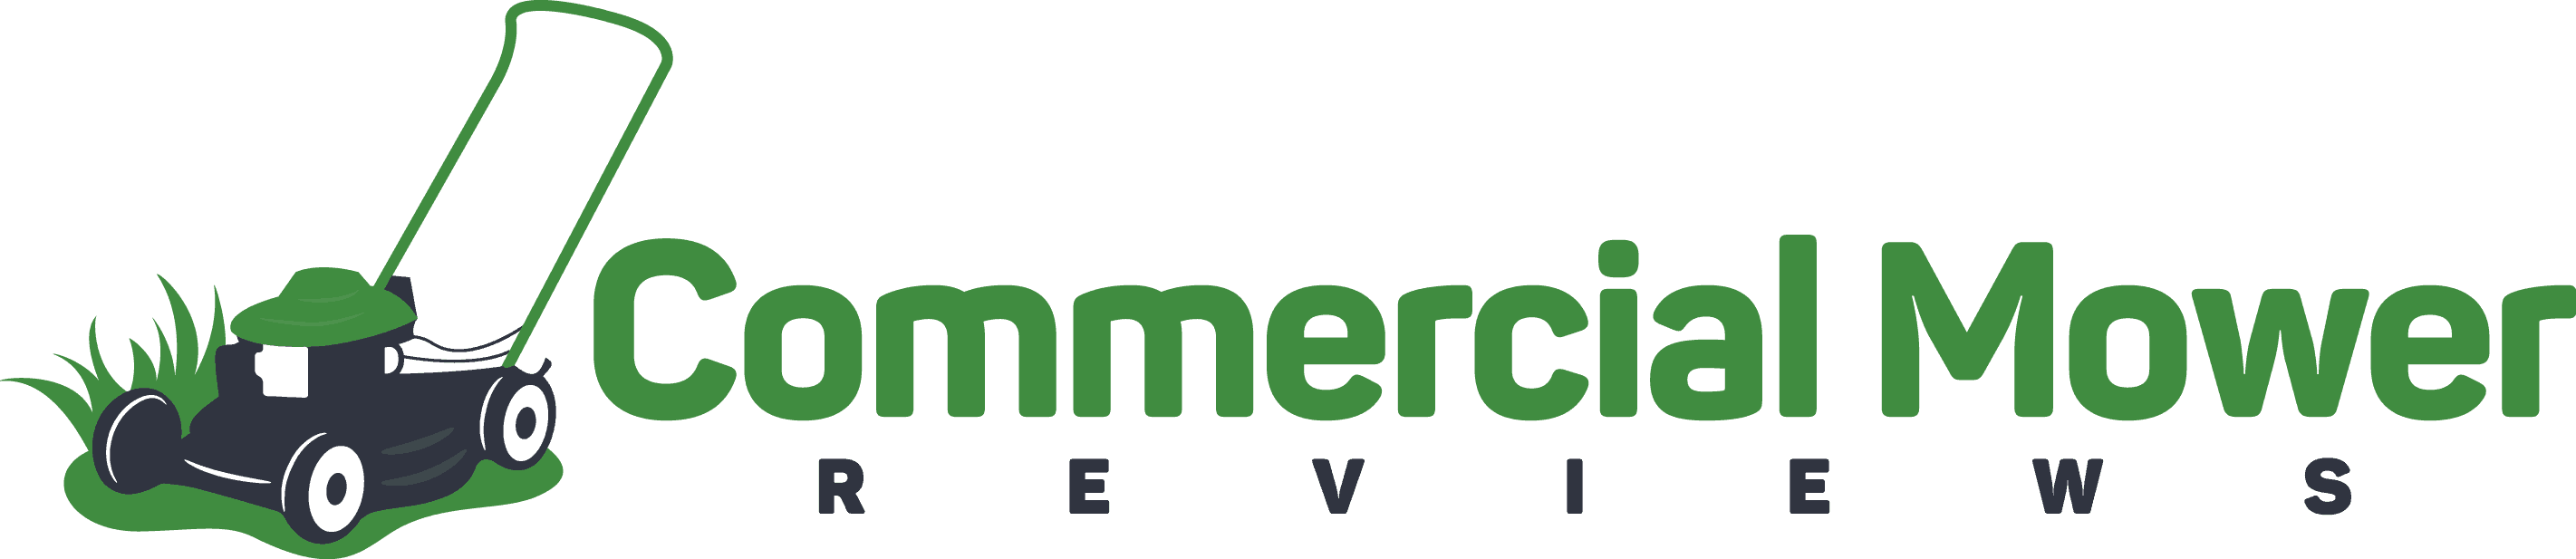 Commercial Mower Reviews